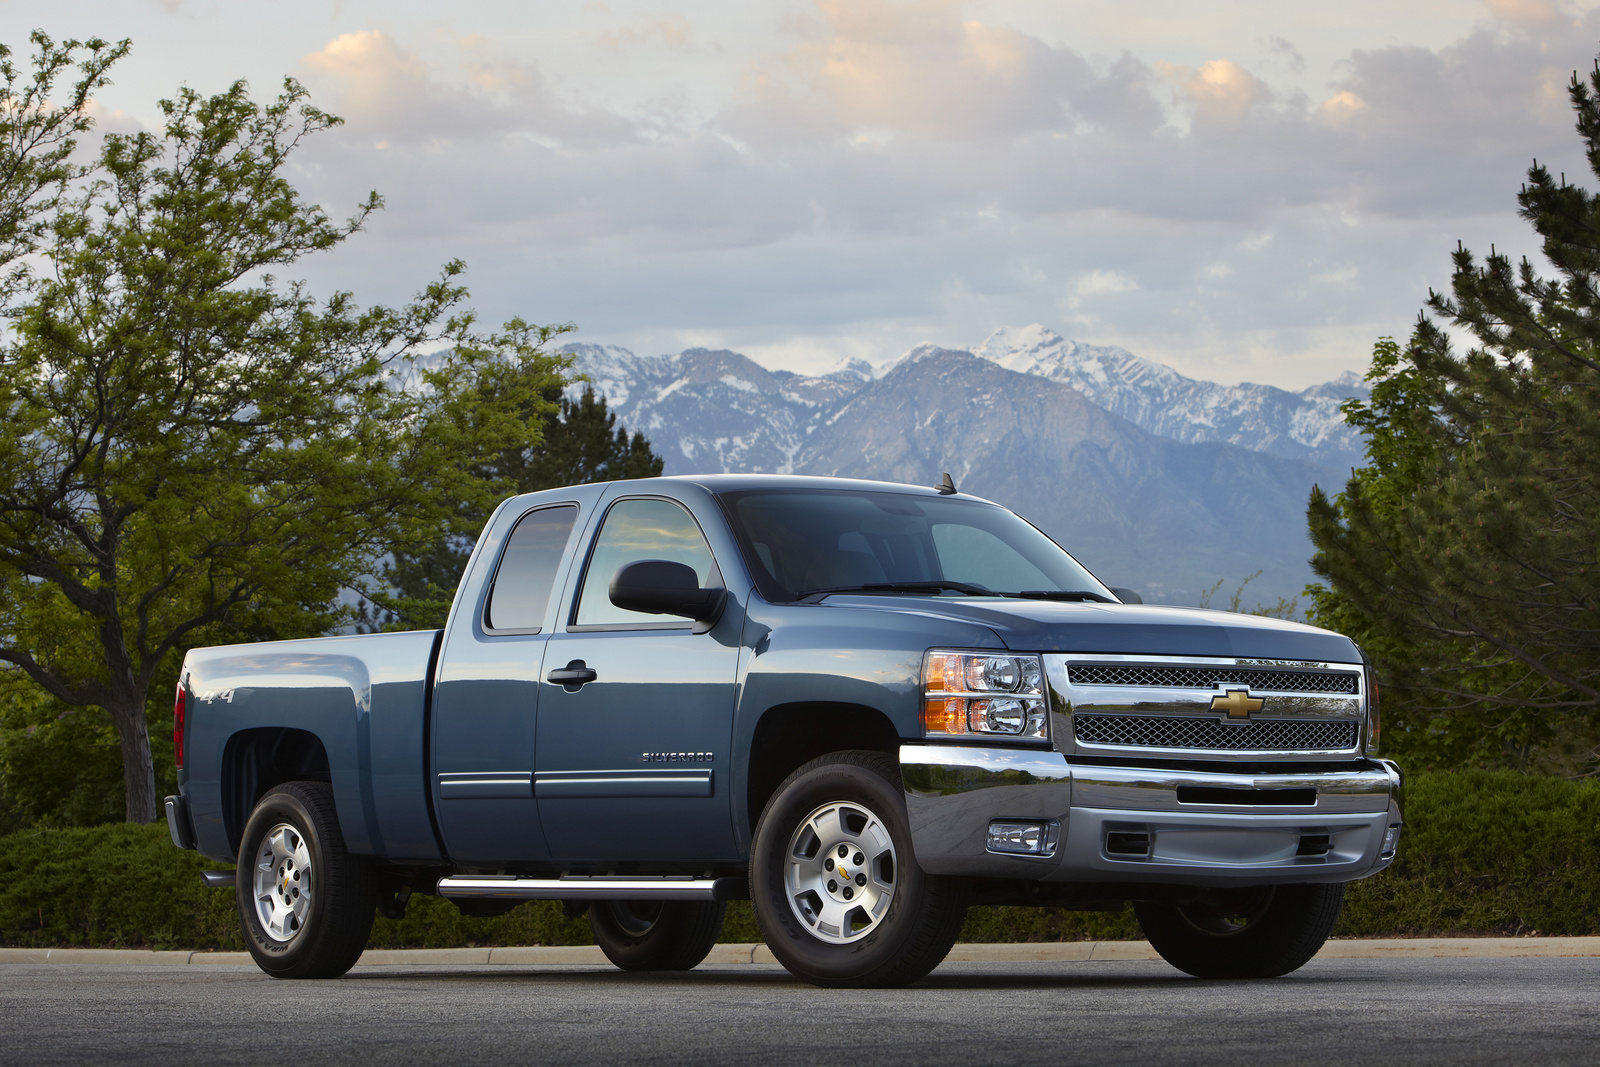 Costco Ford F150 >> 2013 Chevrolet Silverado 1500 - Test Drive Review - CarGurus